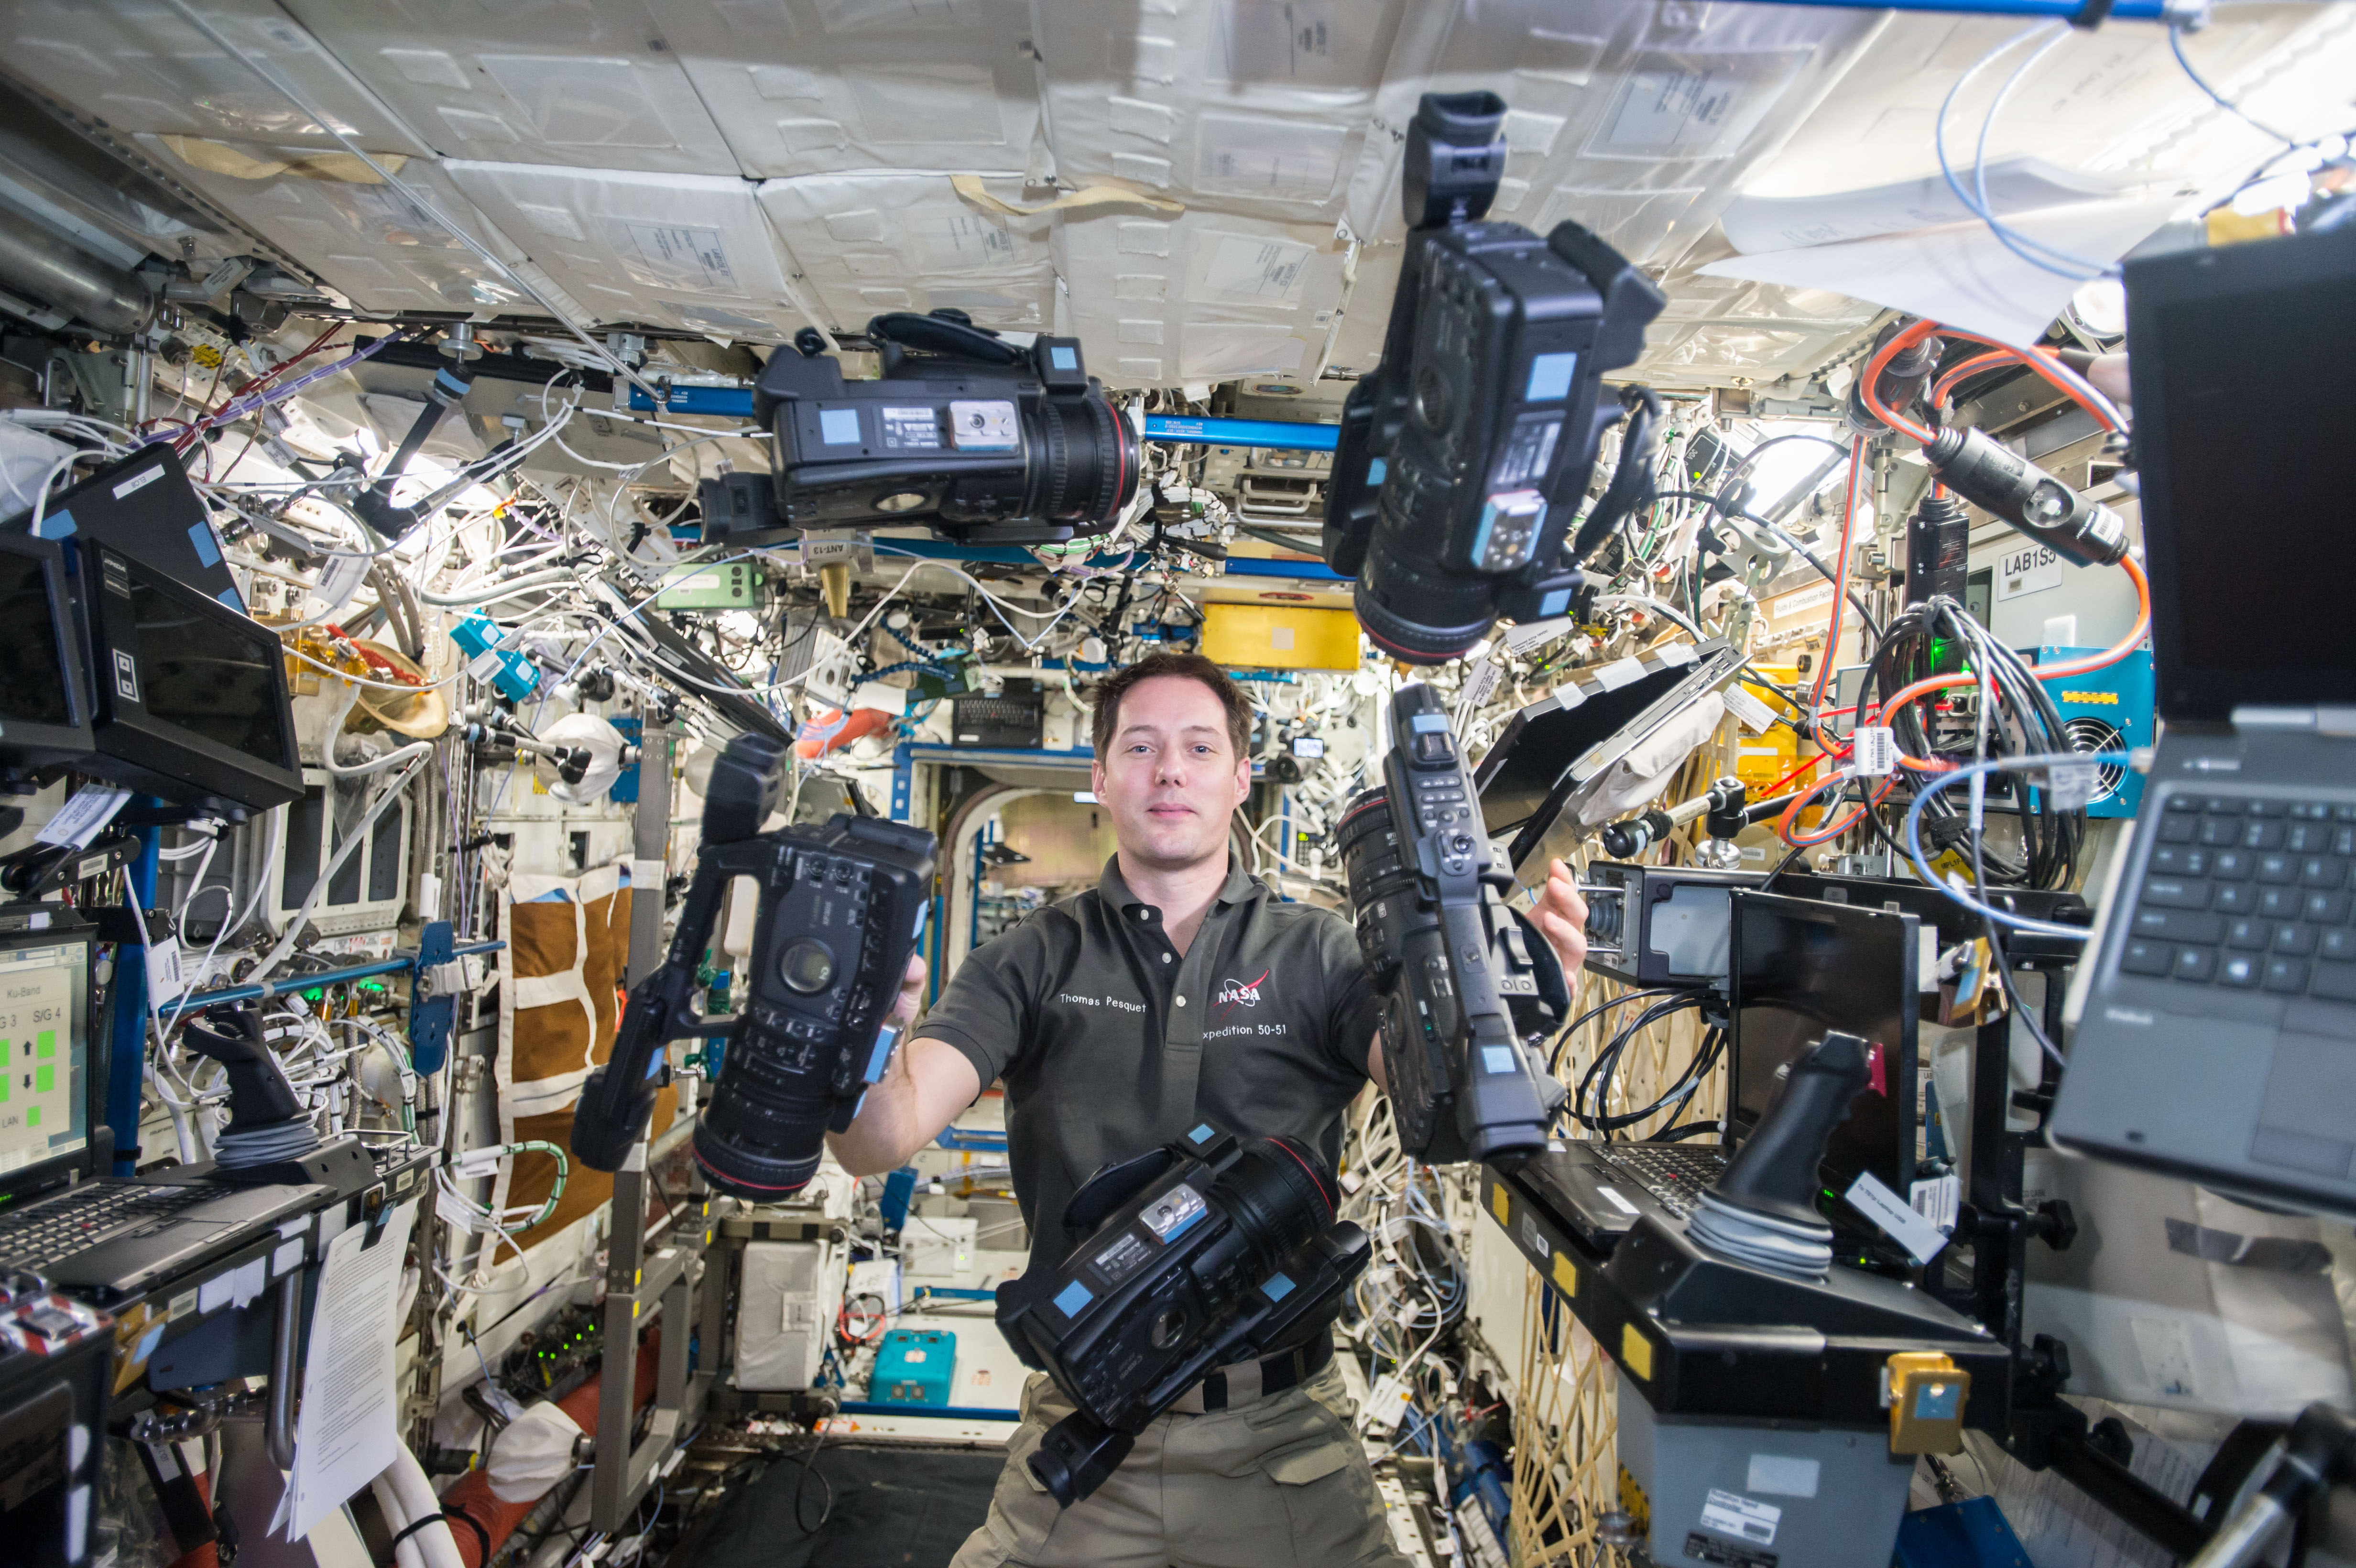 File:ISS-50 Thomas Pesquet with video cameras in the ...